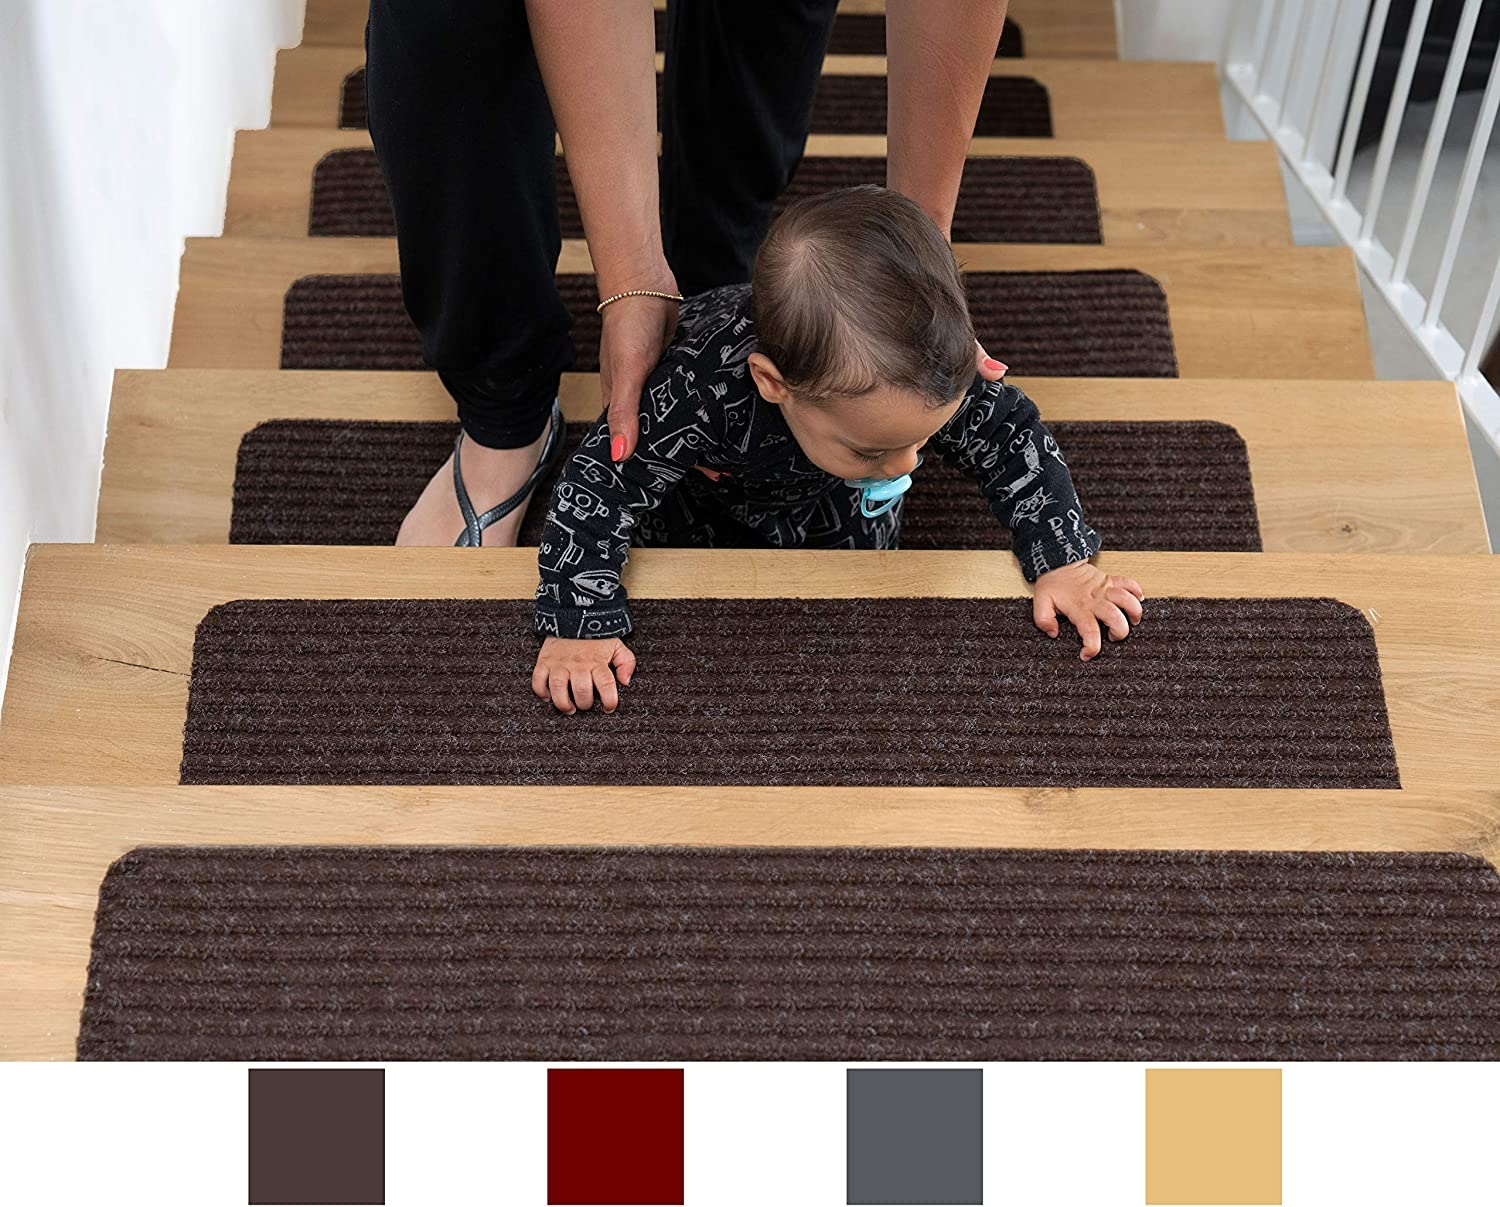 Top 10 Best Carpet For Stair Treads Reviews Buying Guide | Best Carpet For Stairs | Indoor Outdoor | Stairway | Decorative | Traditional | Carpet Grey Carpet Up Centre